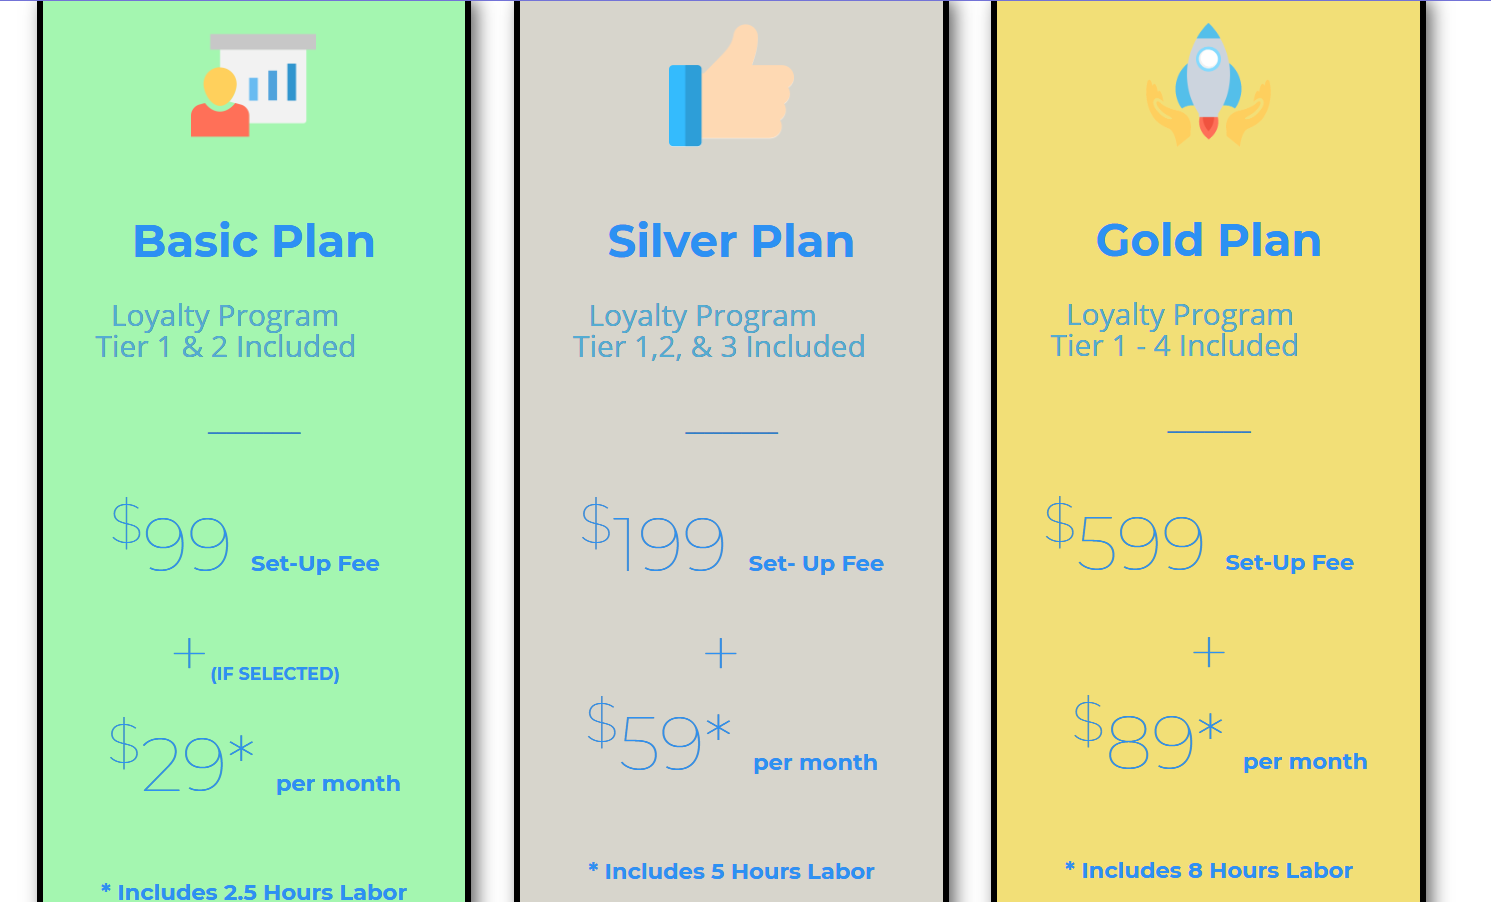 2019 12 08 2159 - The Best Customer Loyalty Program Available for Small Business in 2020? Our SMART Loyalty Program Review...